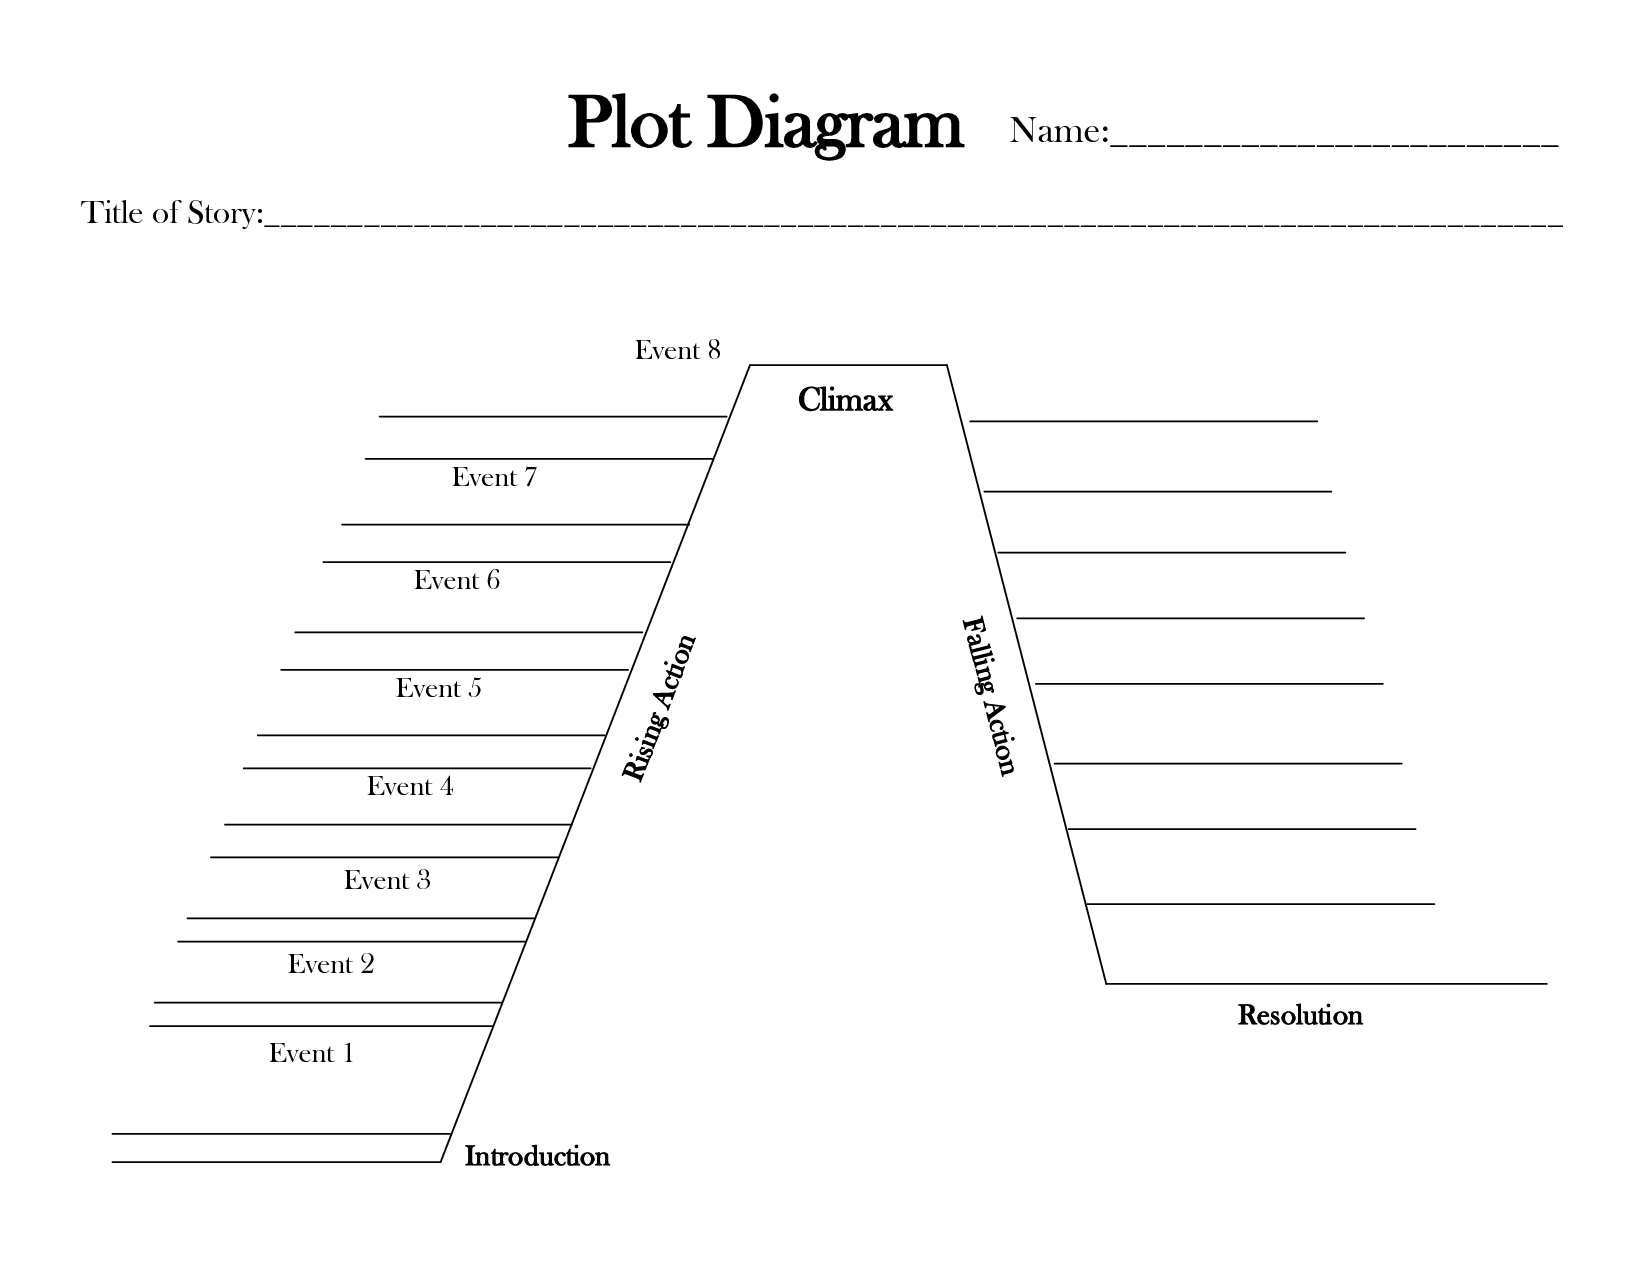 Plot Diagram Name